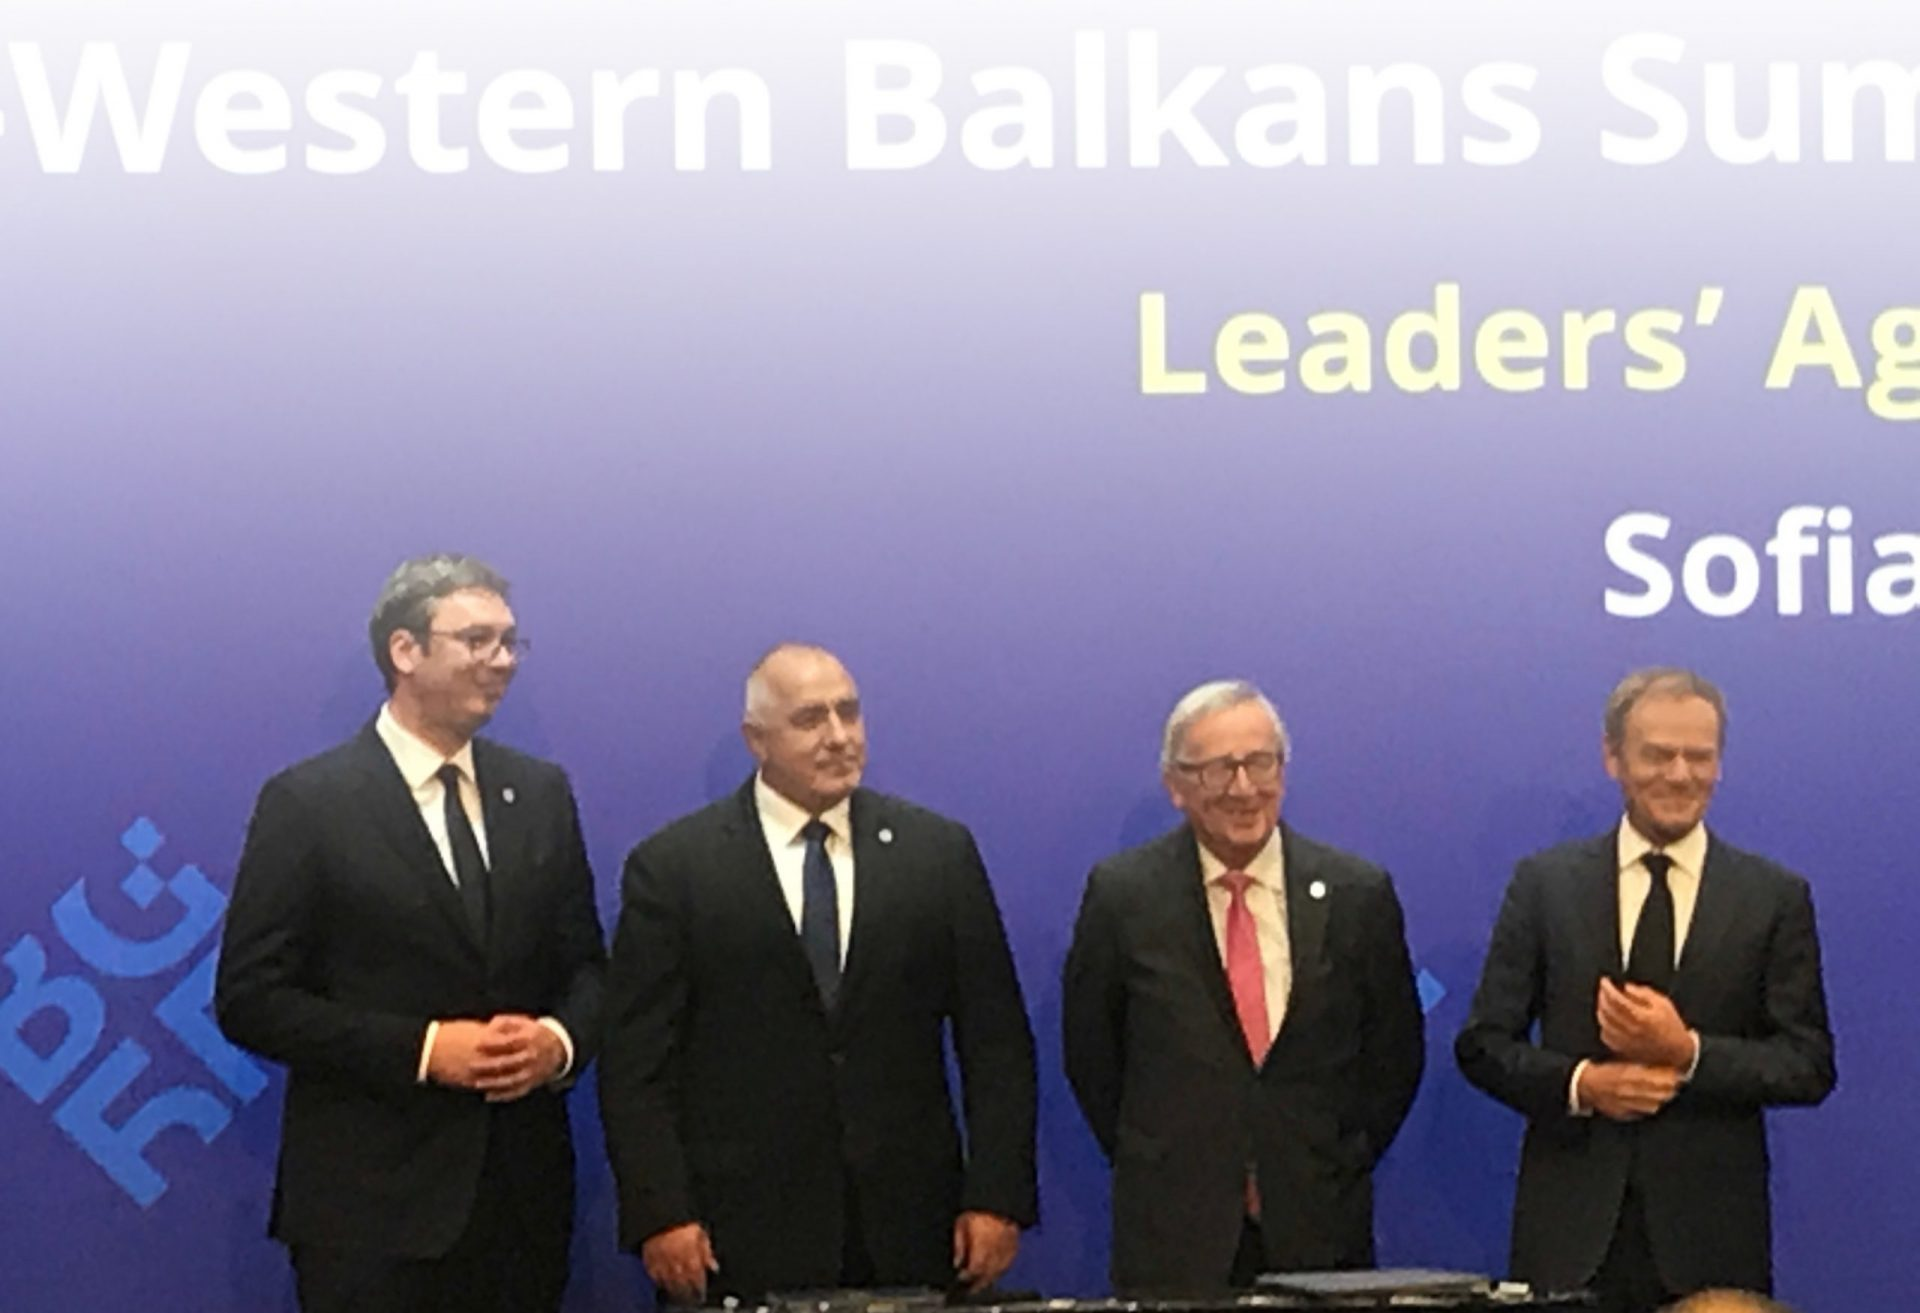 A look back at the EU-Western Balkans summit in Sofia – a show of western integration and division